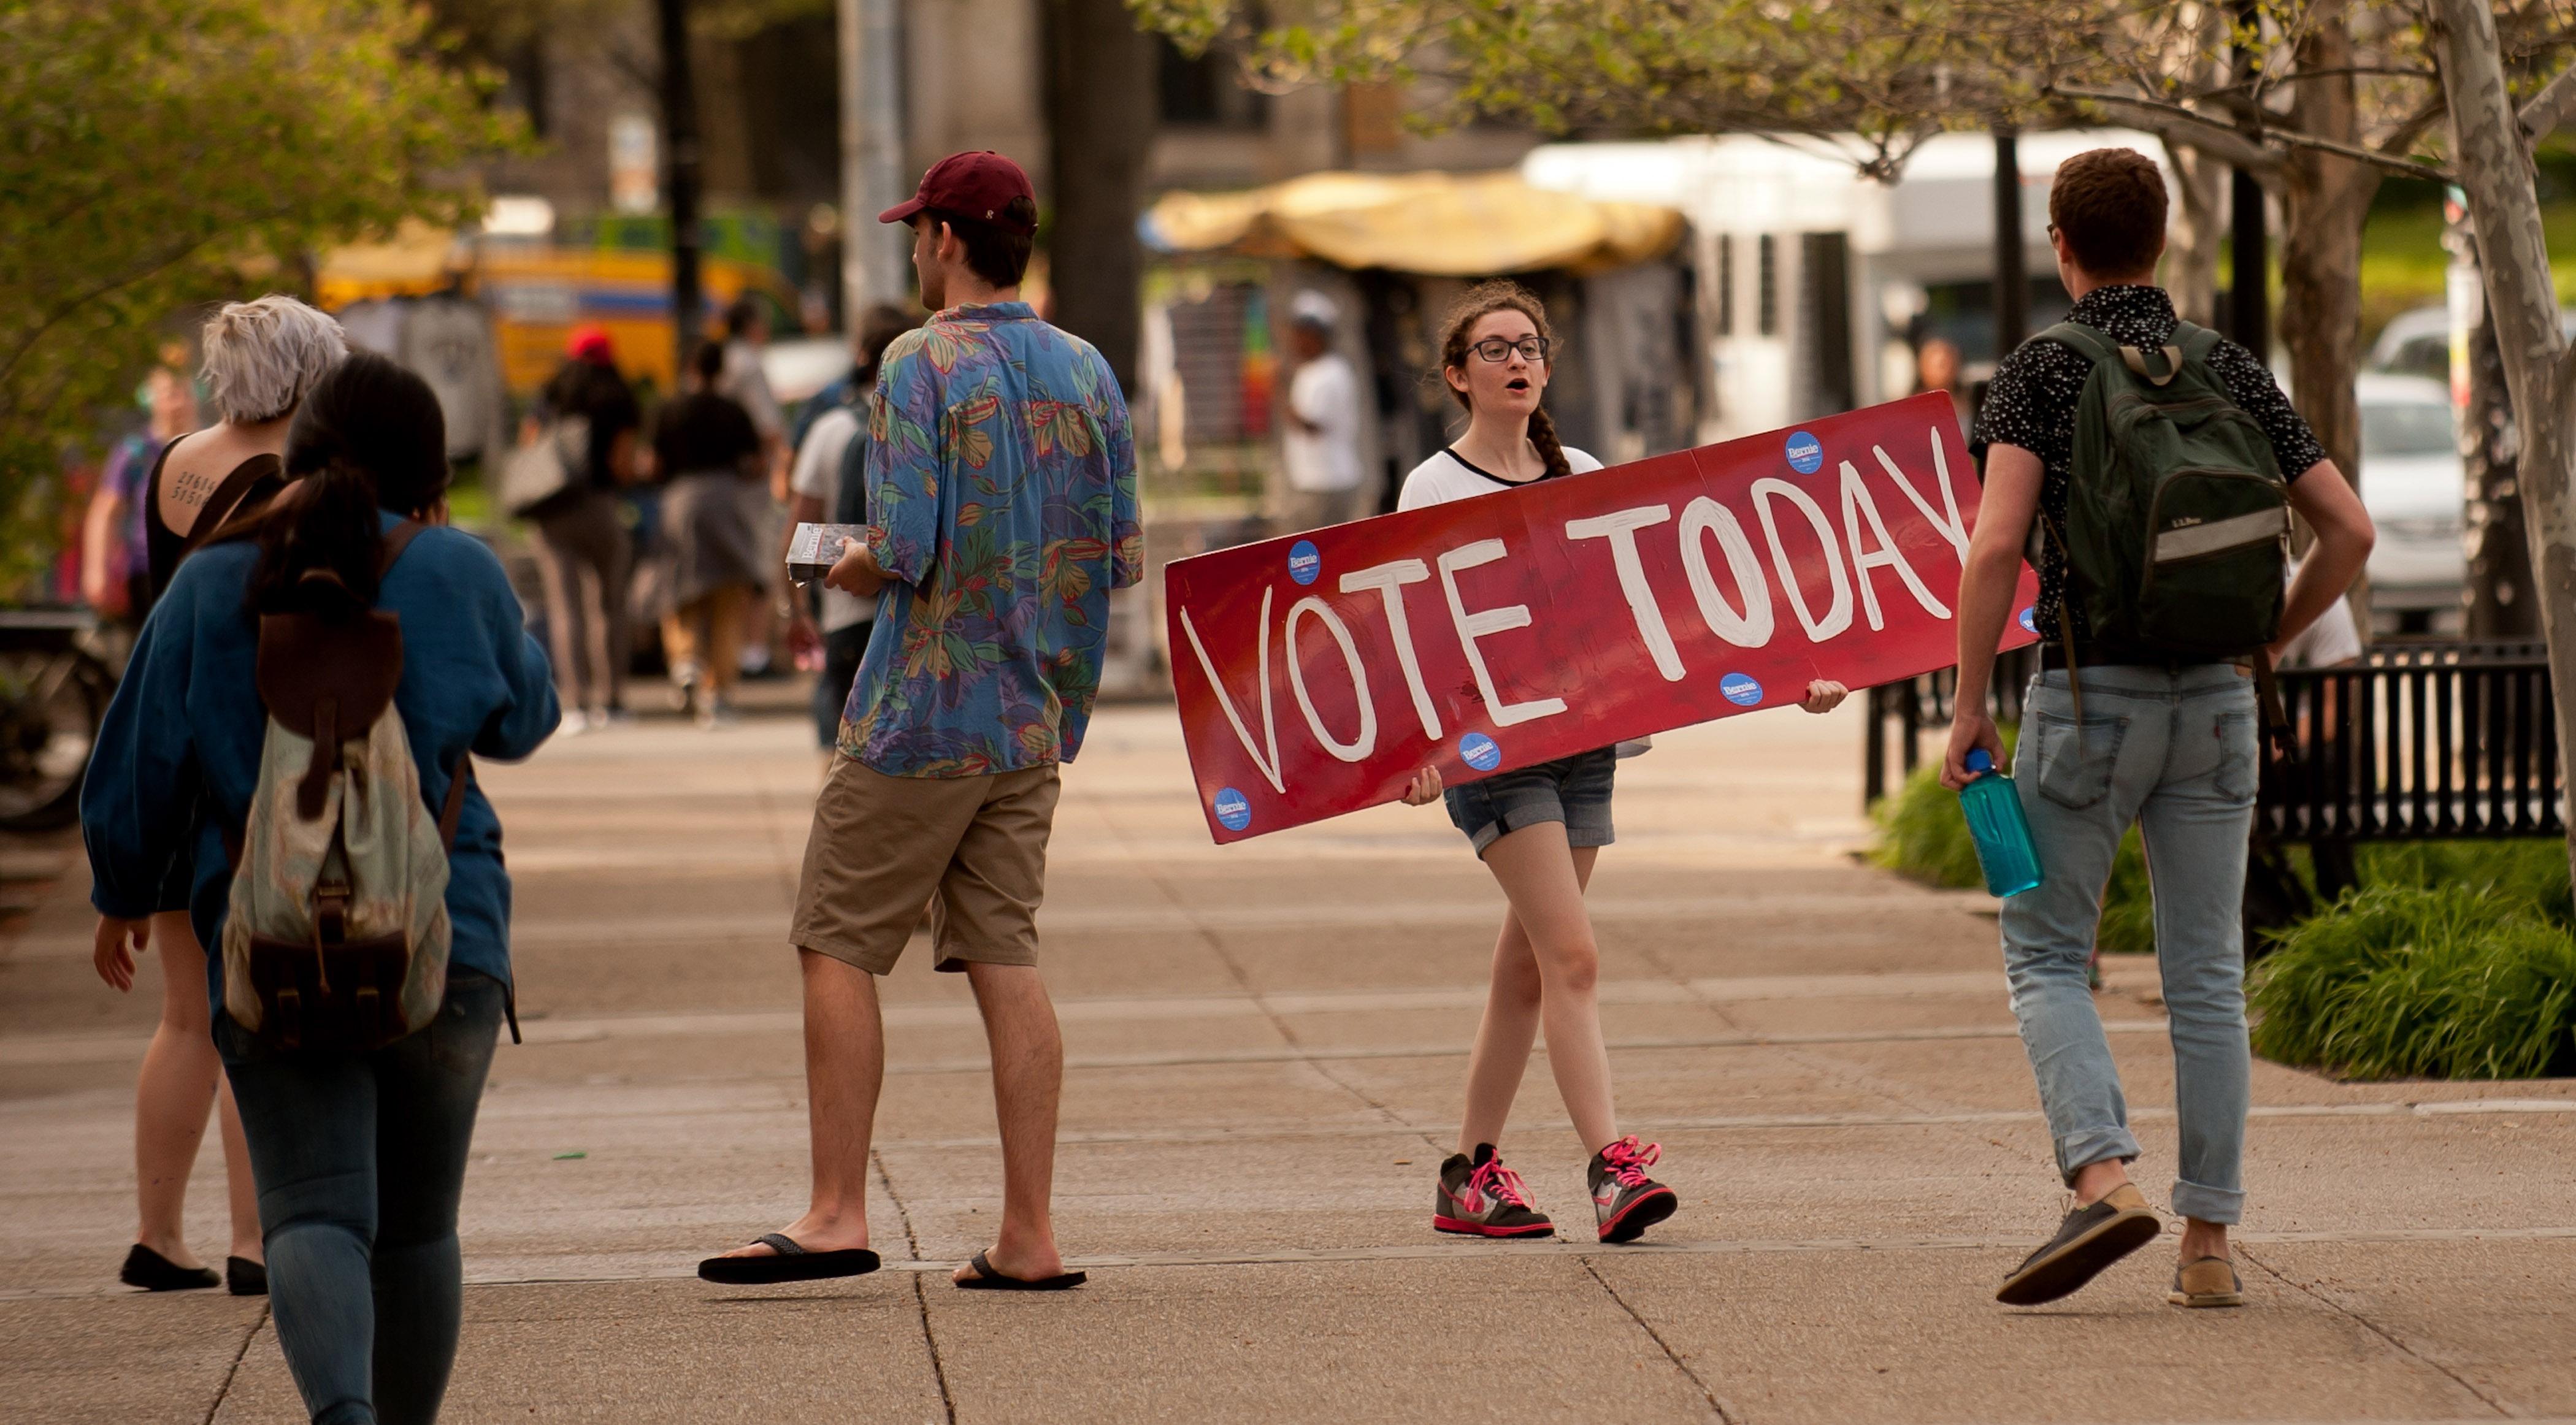 Bernie Sanders supporter Maria DelGrande implores passersby to vote in the Pennsylvania primary election on April 26, 2016 in Pittsburgh, Pennsylvania.